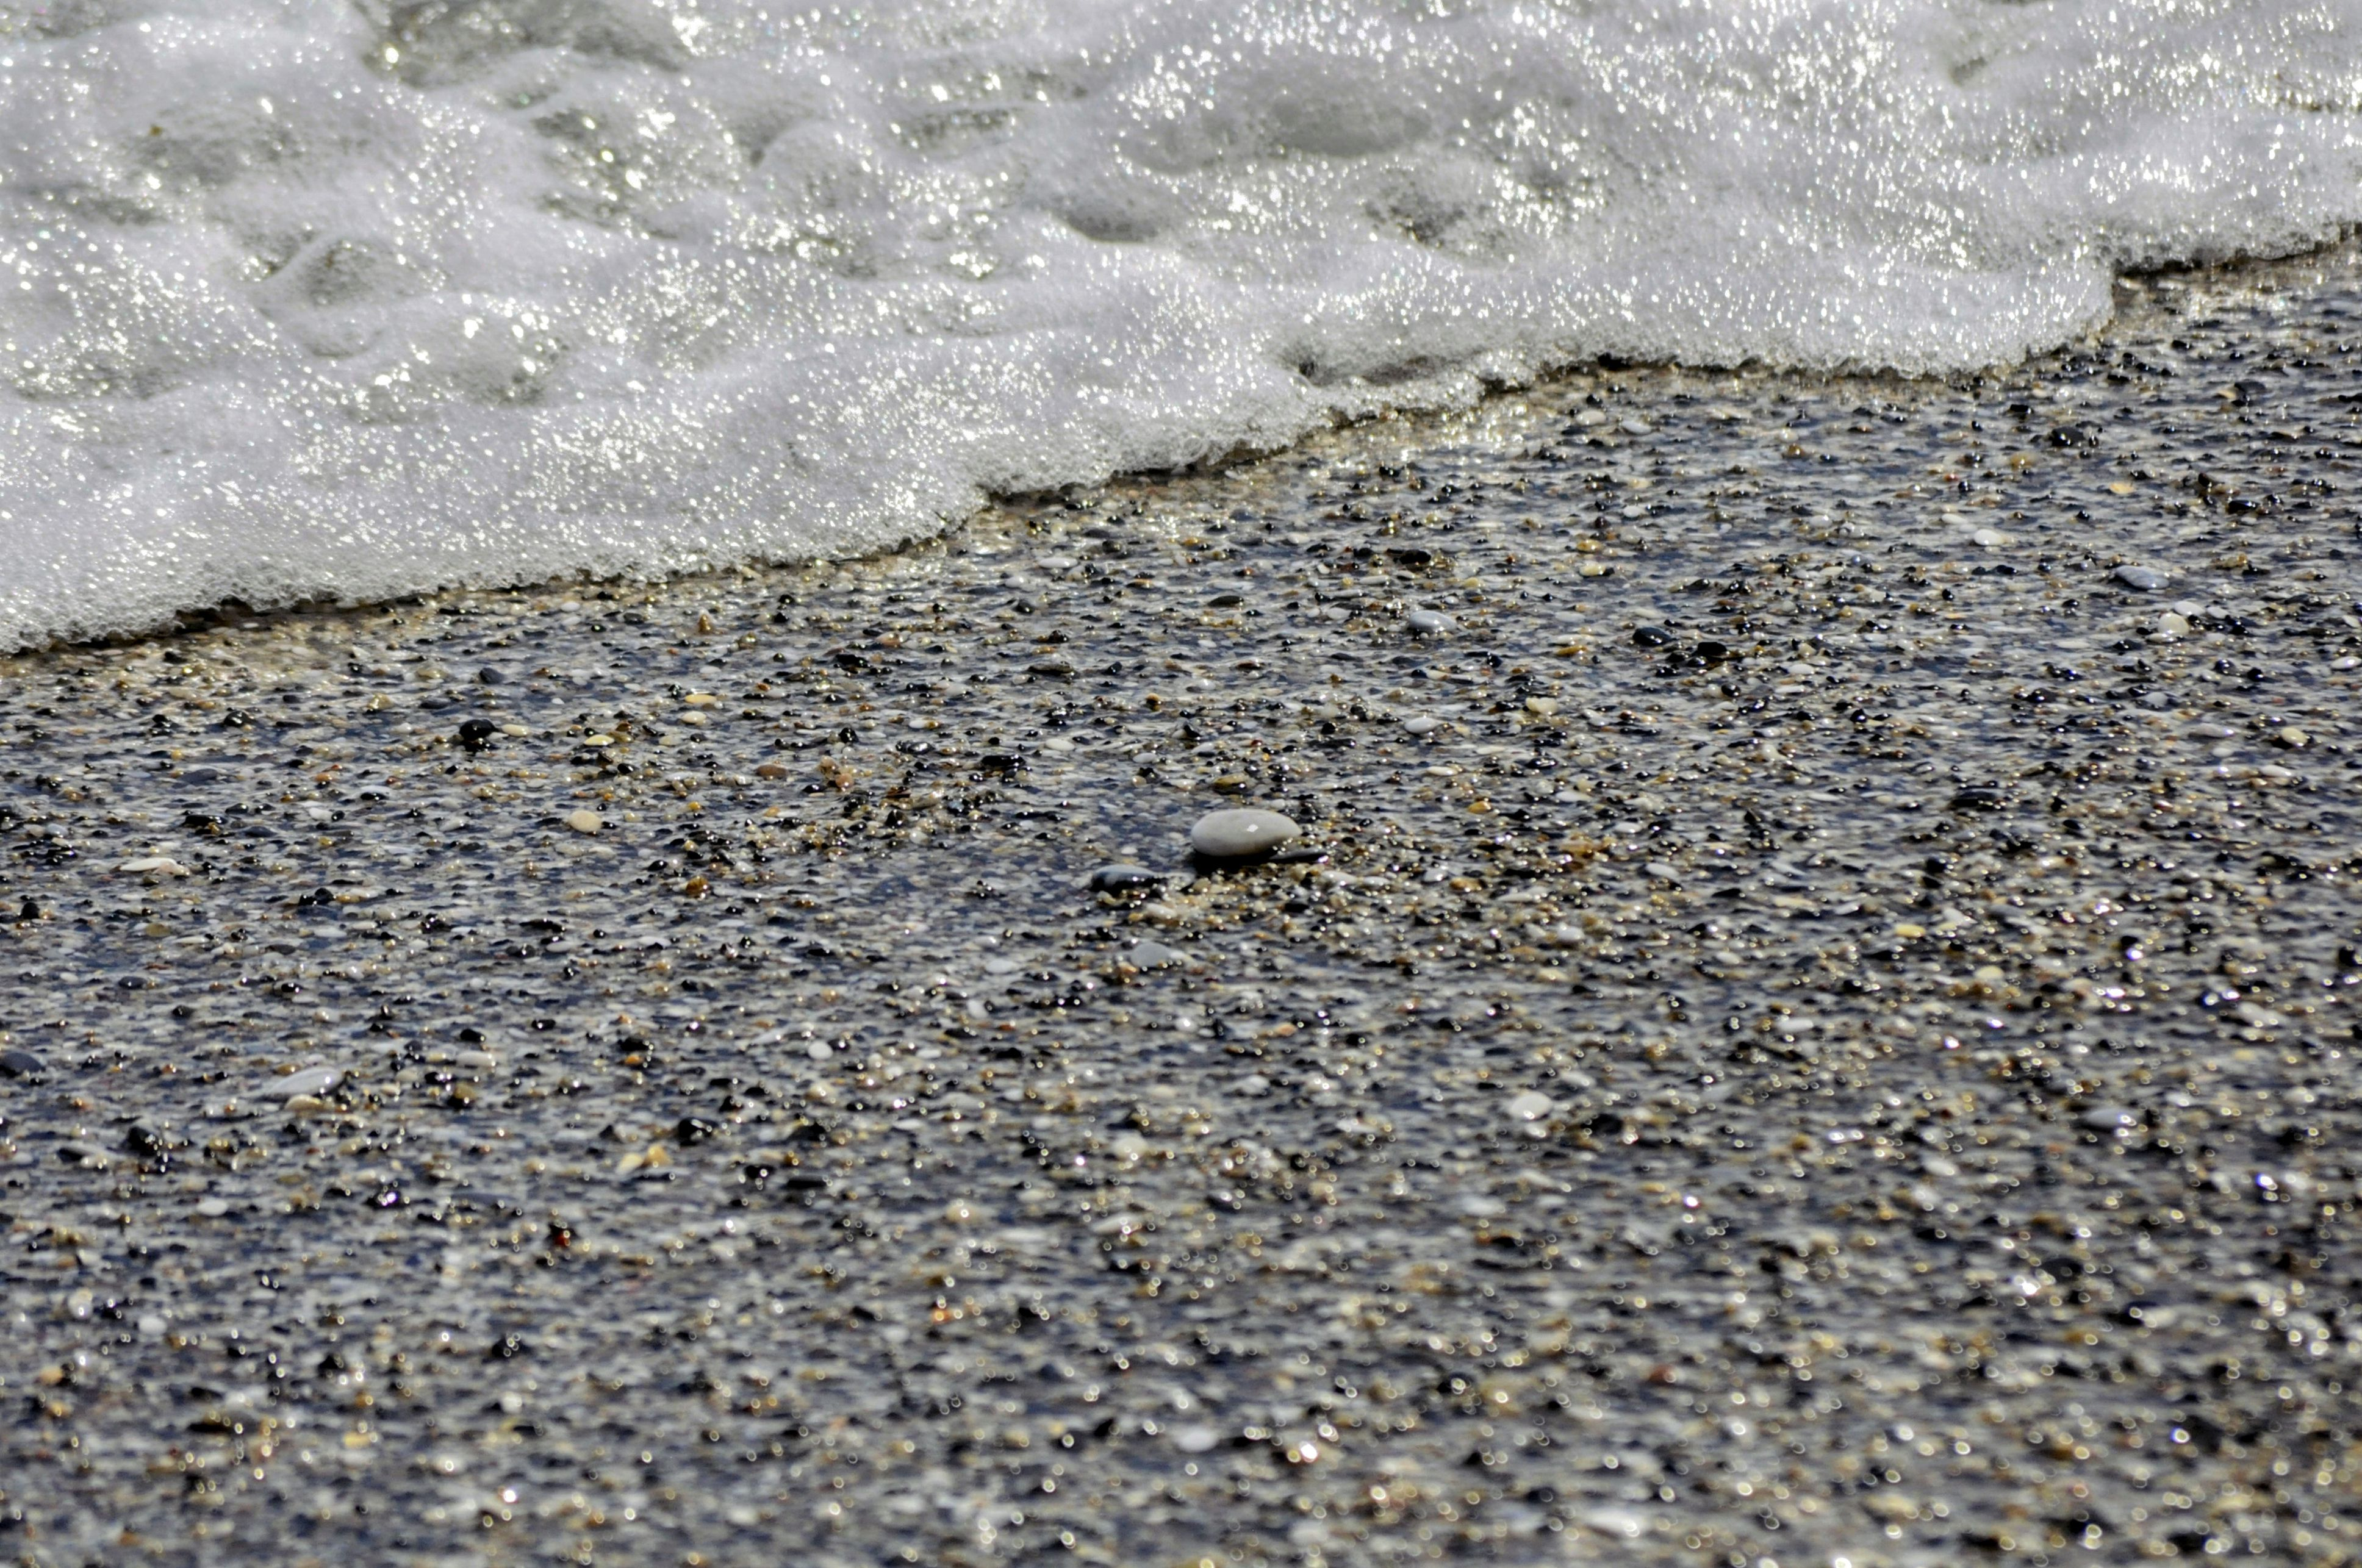 Over time, pebbles on a beach may form conglomerate rock.